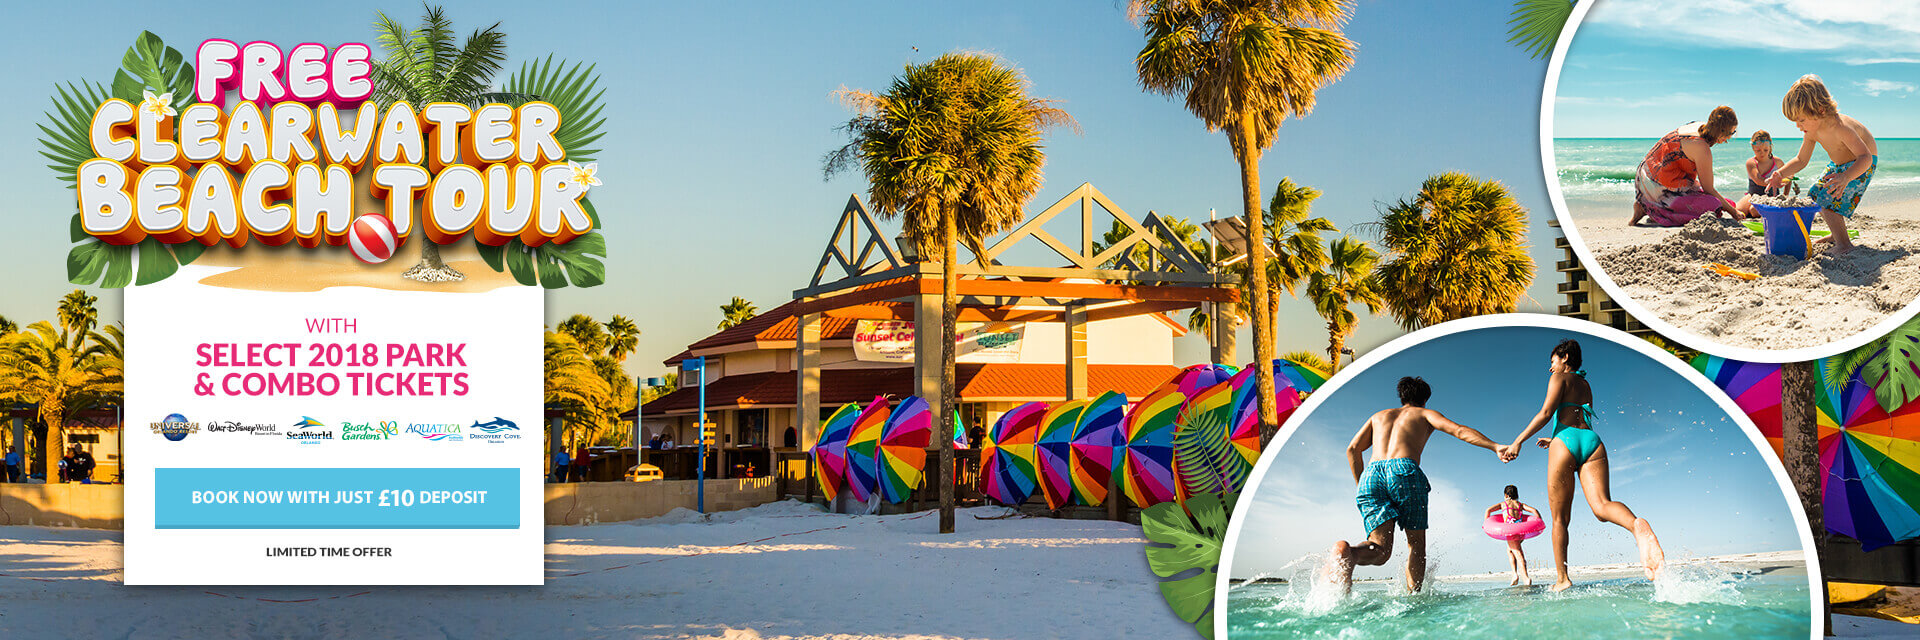 Free Clearwater Tour with Select Park and Combo Tickets